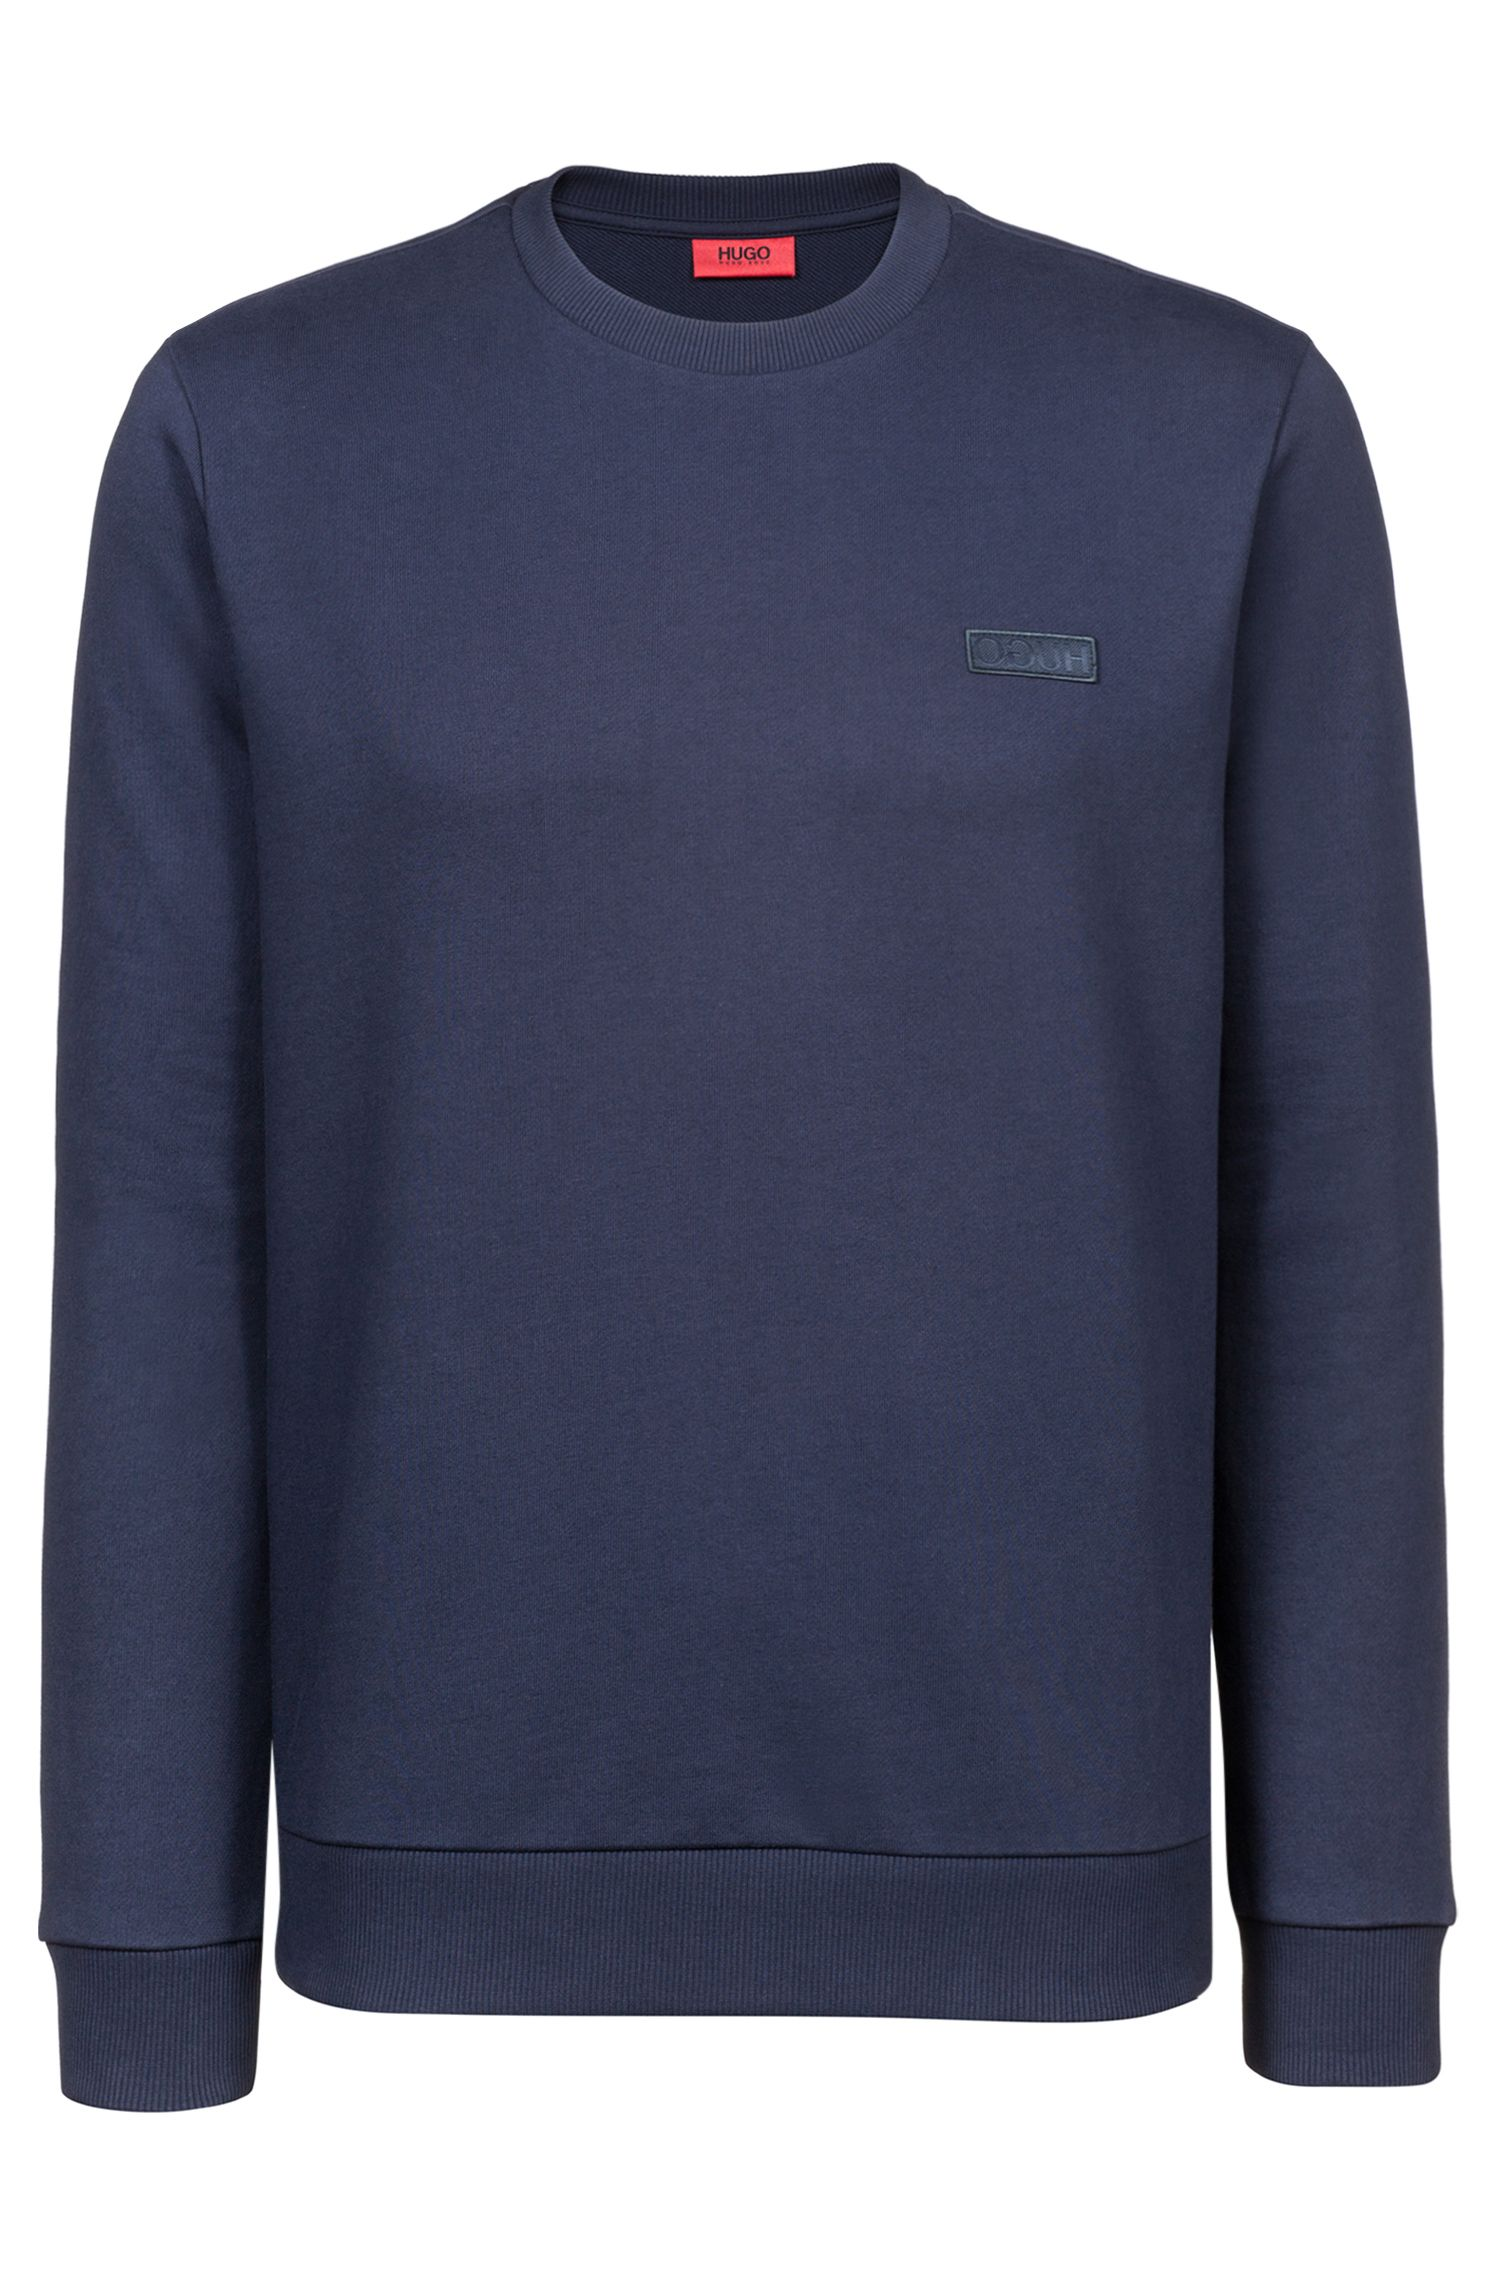 French terry sweatshirt with reverse-logo badge, Dark Blue